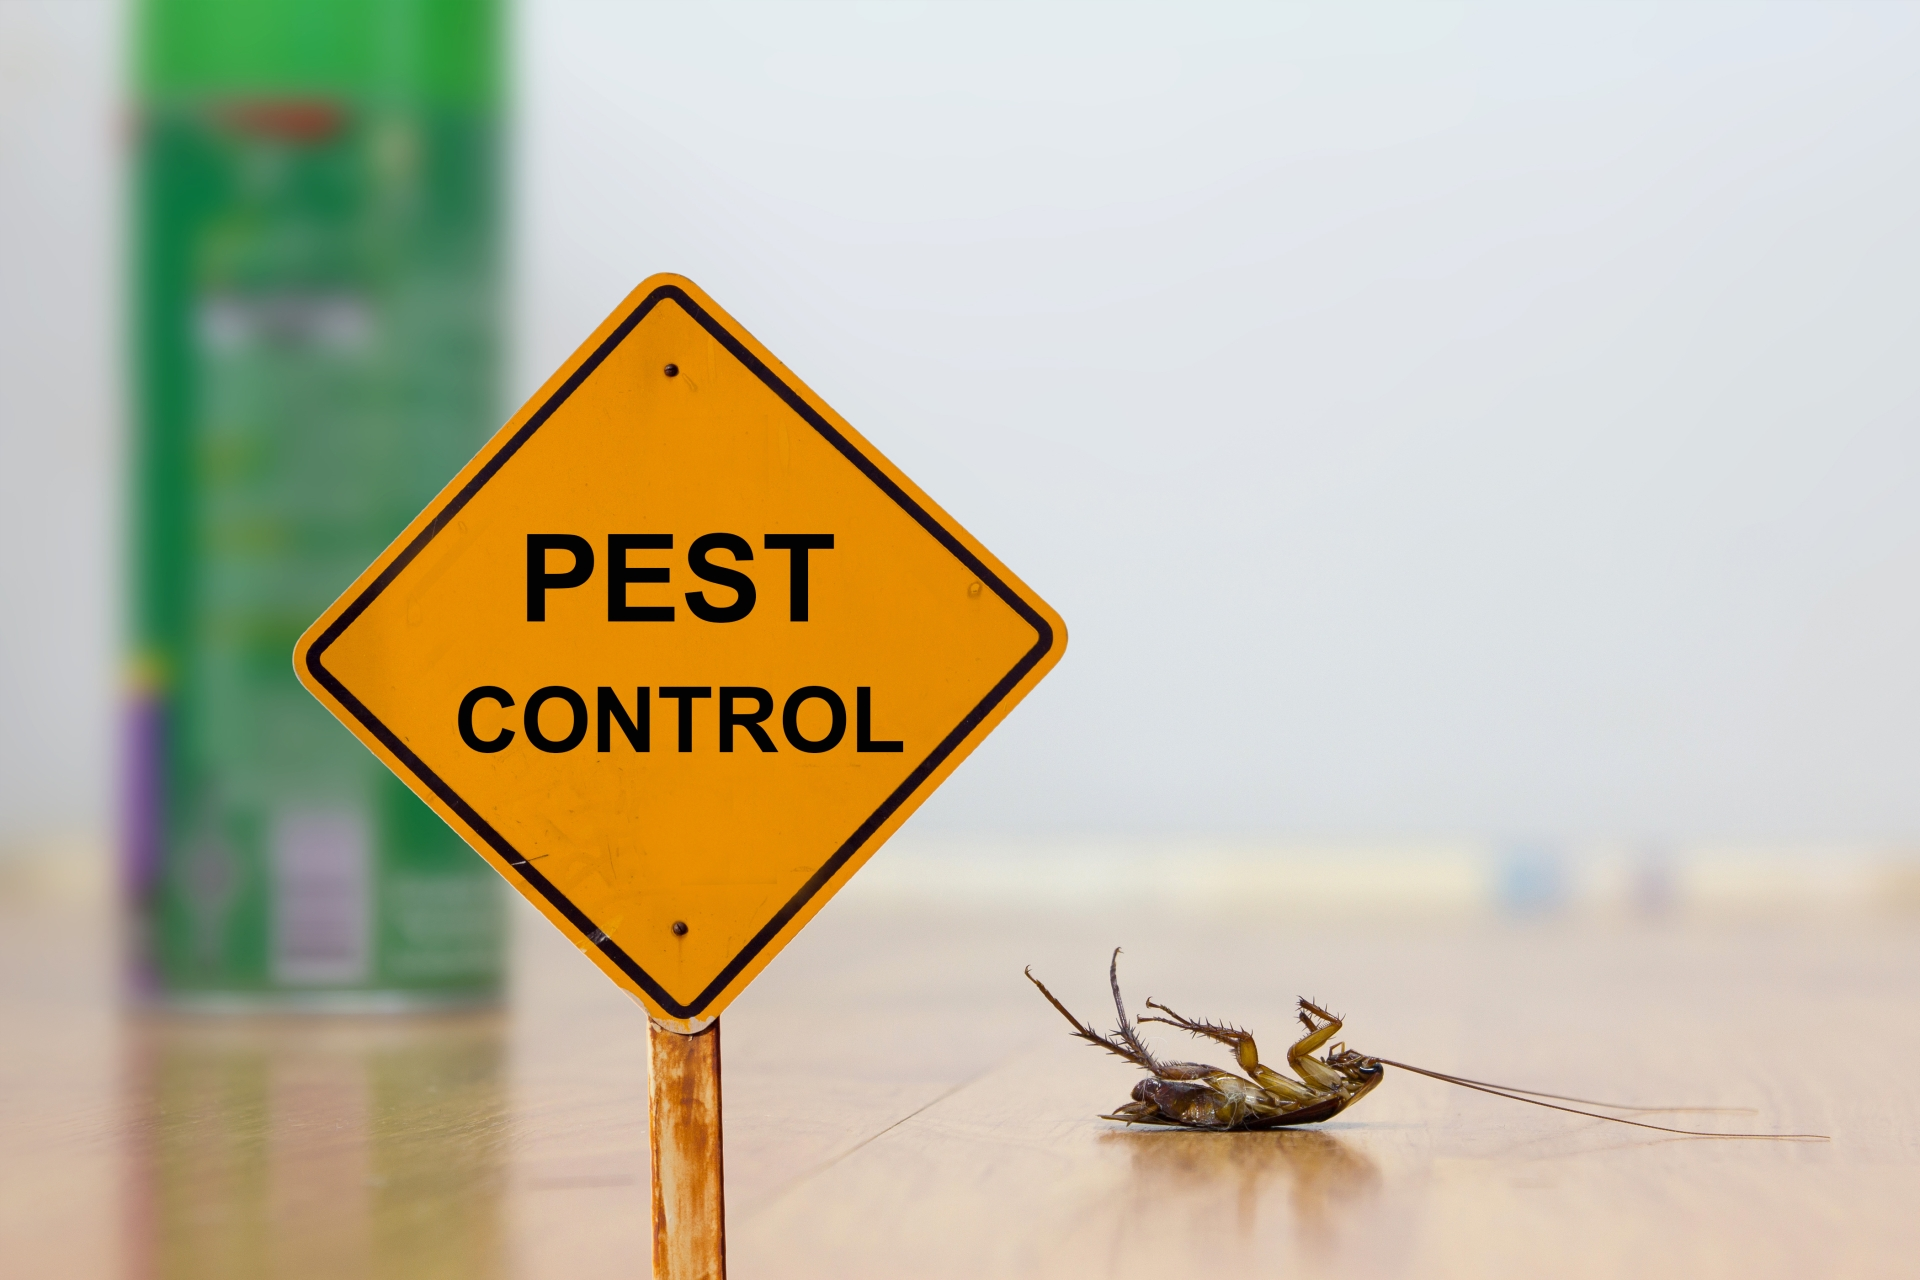 24 Hour Pest Control, Pest Control in Tooting, SW17. Call Now 020 8166 9746